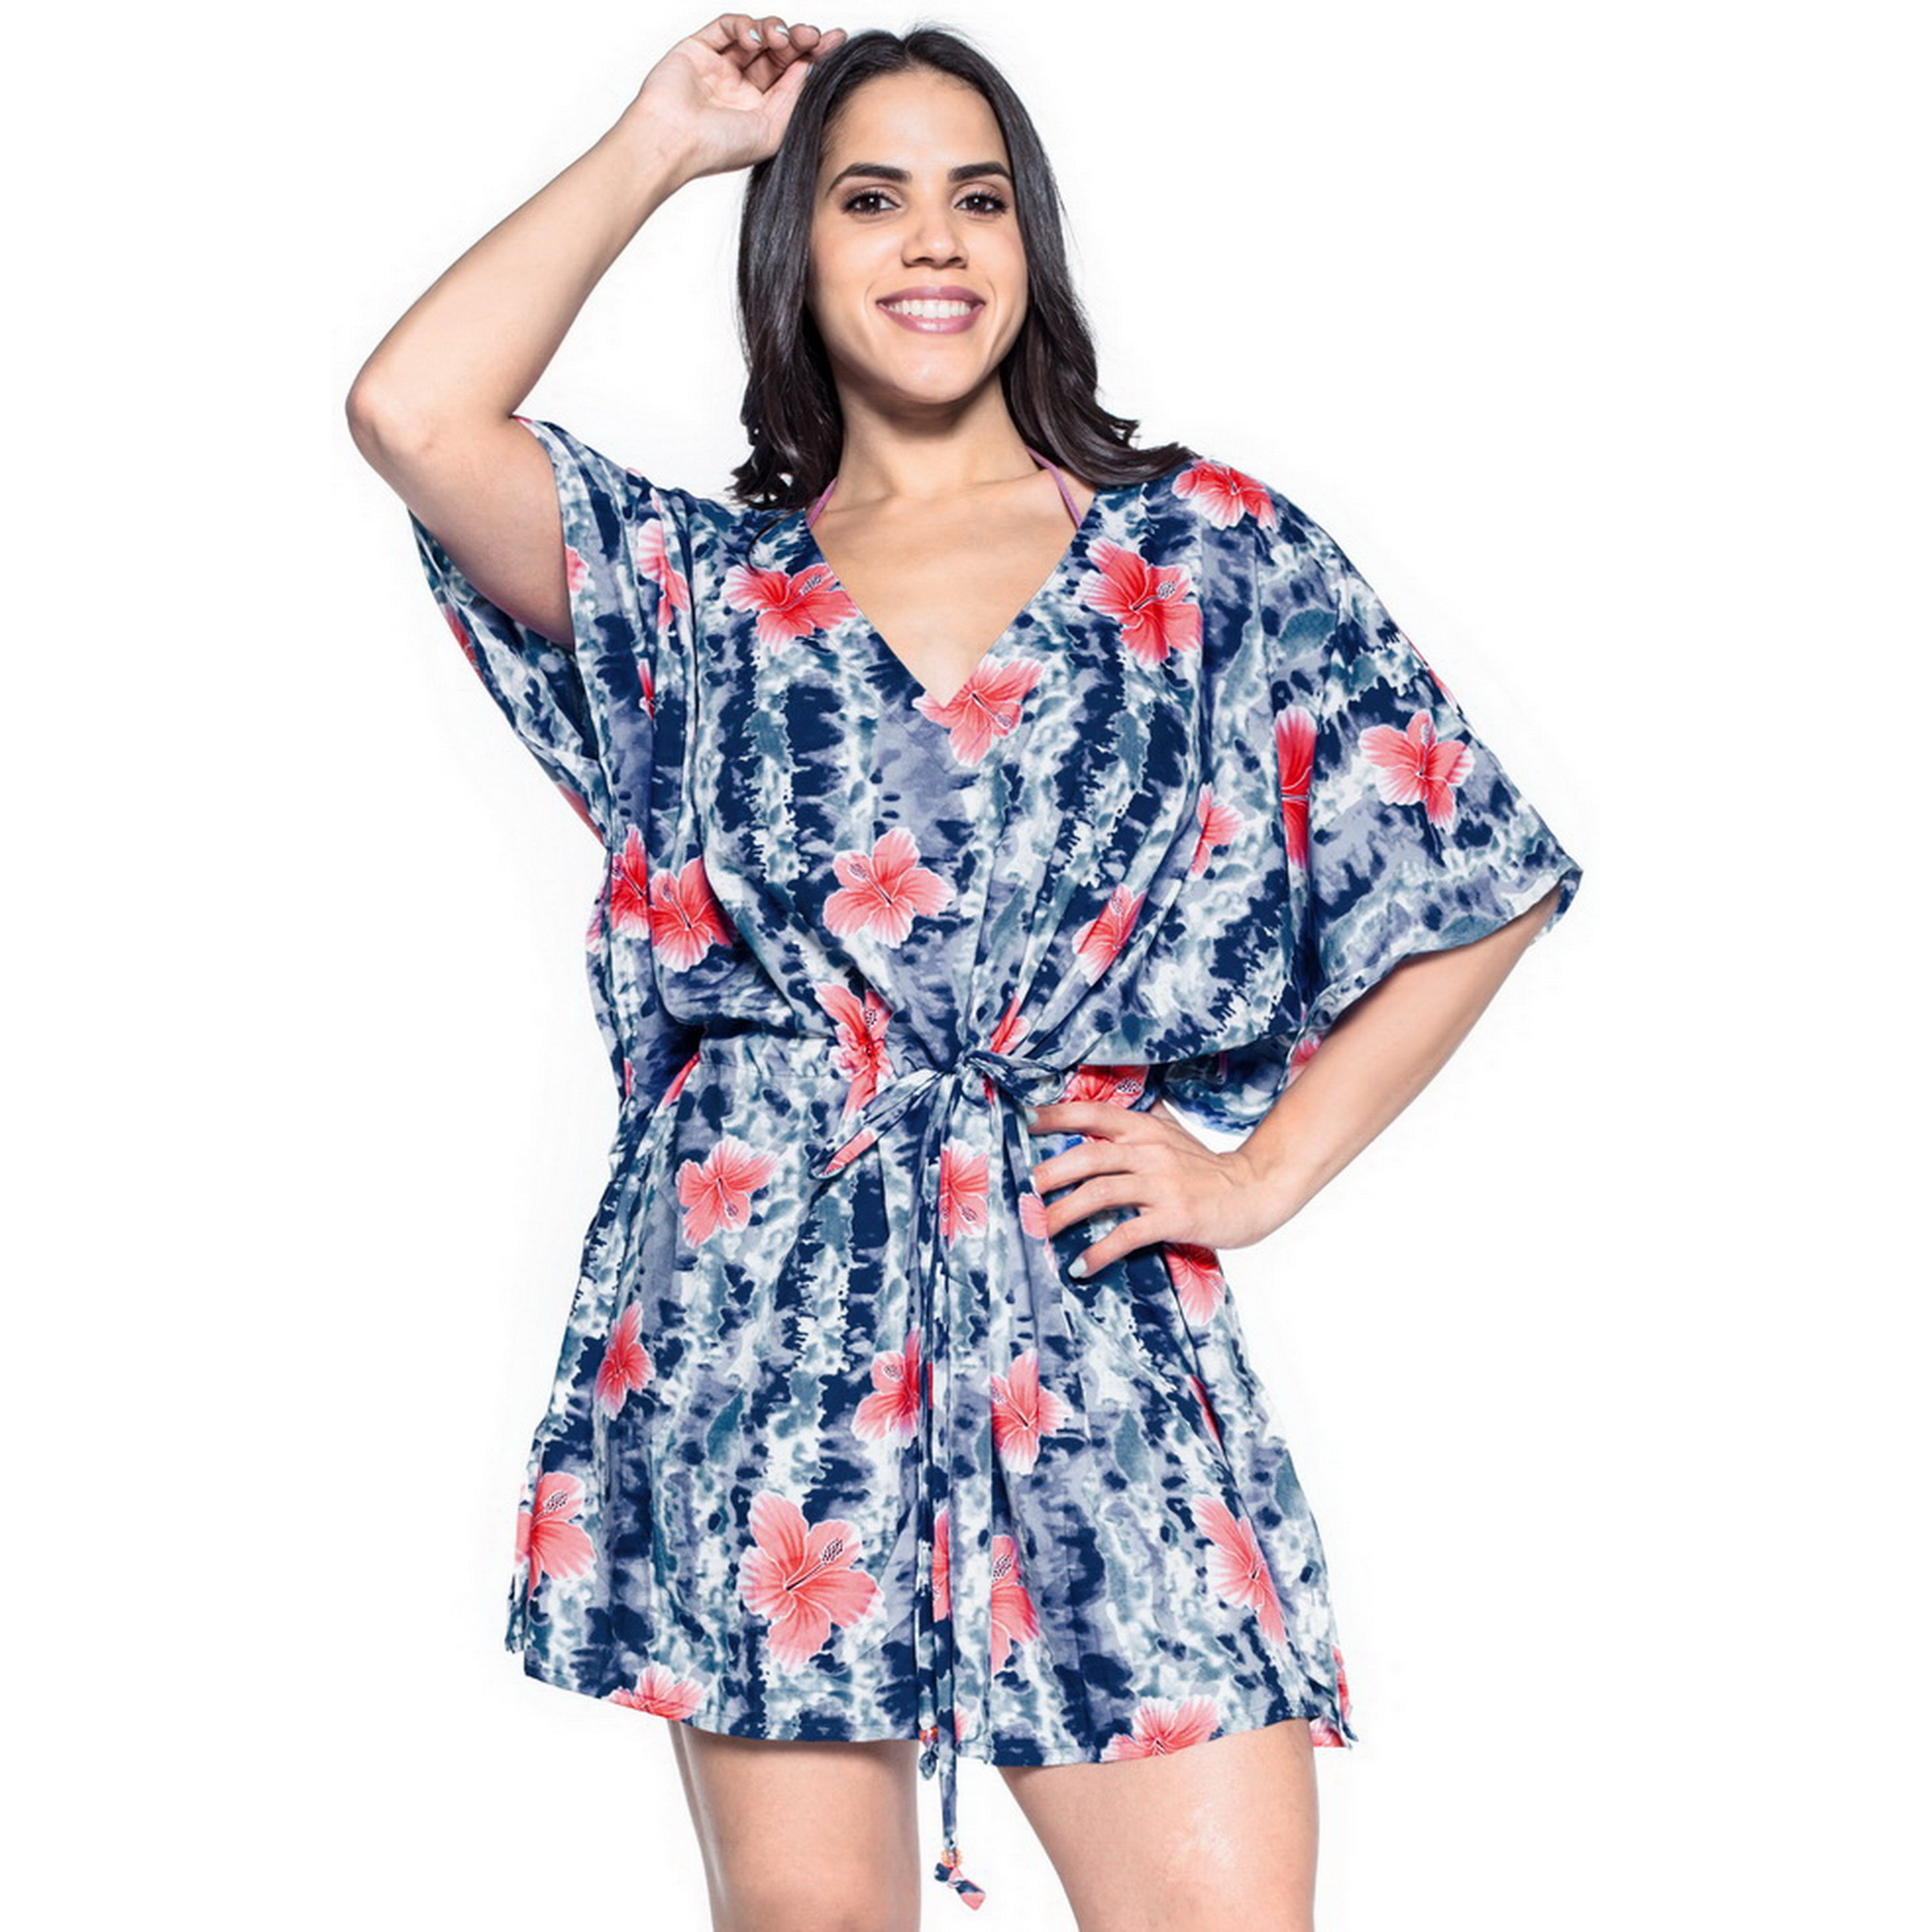 3c5f425ca46ce Shop La Leela Hibiscus Robe Likre Soft Beachwear Dress Kaftan Swimwear  Bikini Cover up Black - Free Shipping On Orders Over $45 - Overstock -  12070738